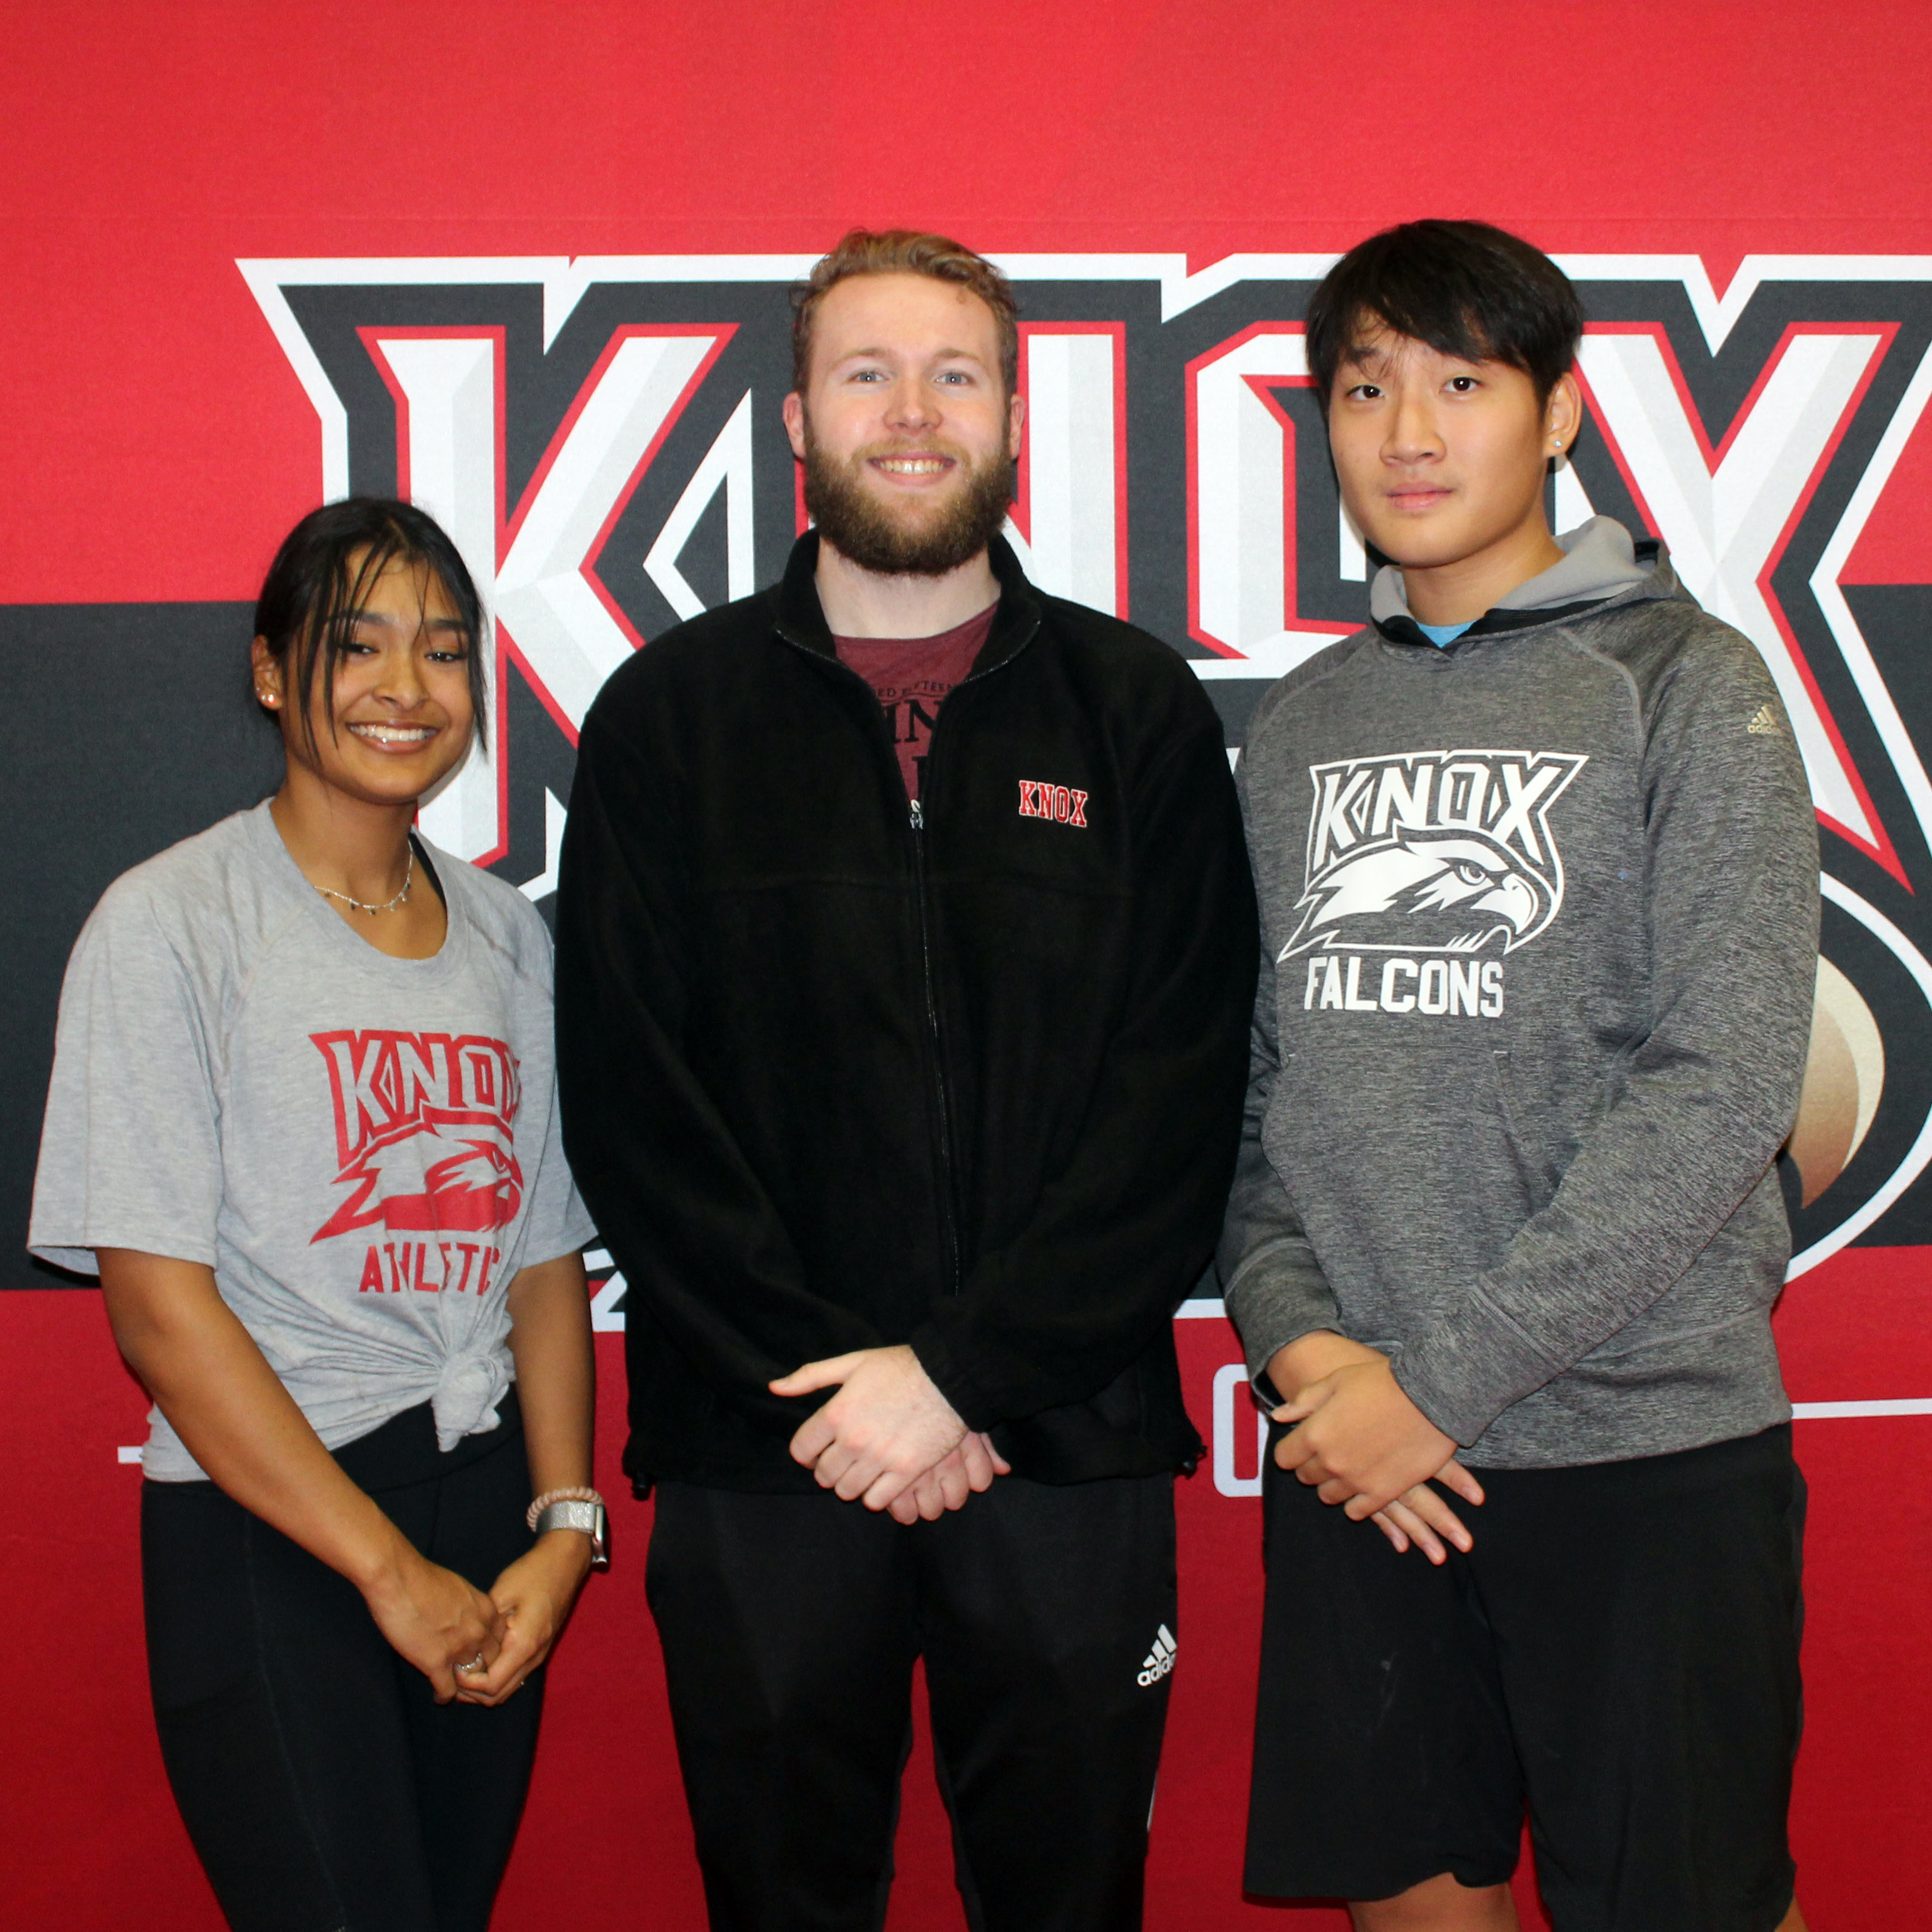 Image of Knox rowing coach and two student-athletes